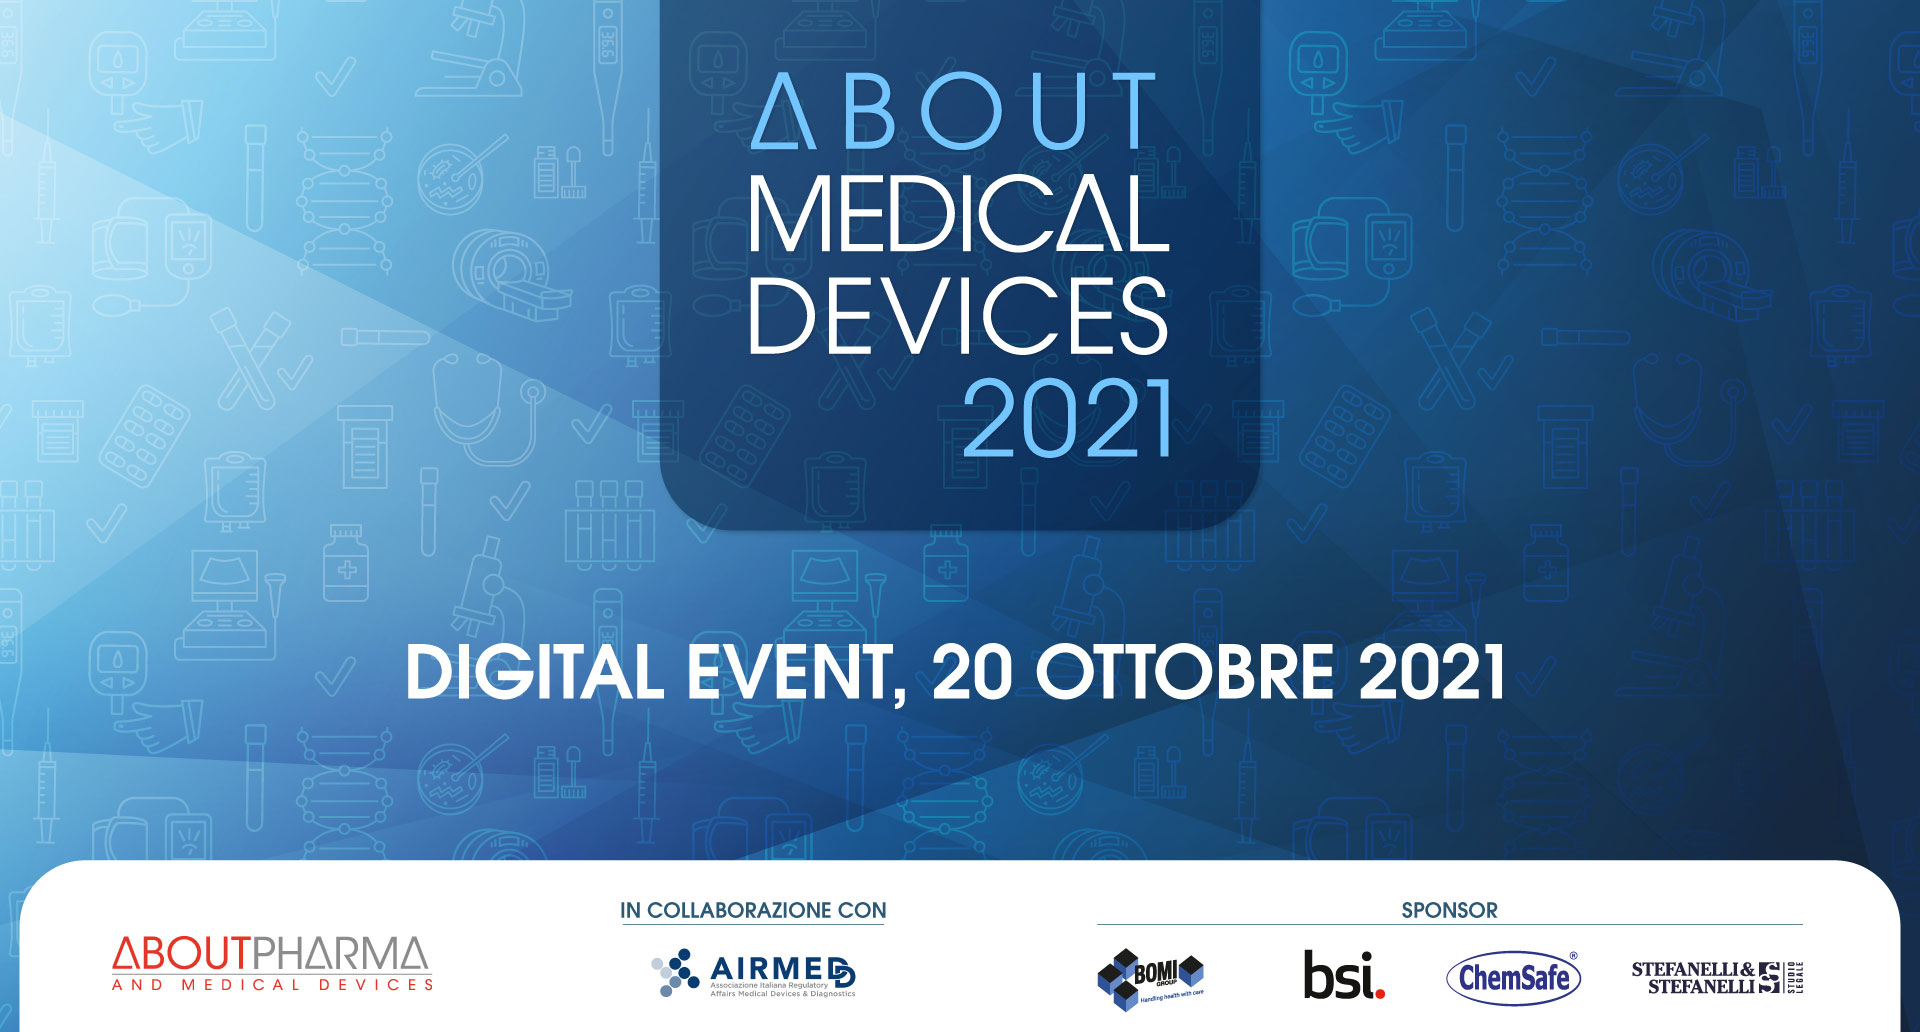 About Medical Devices